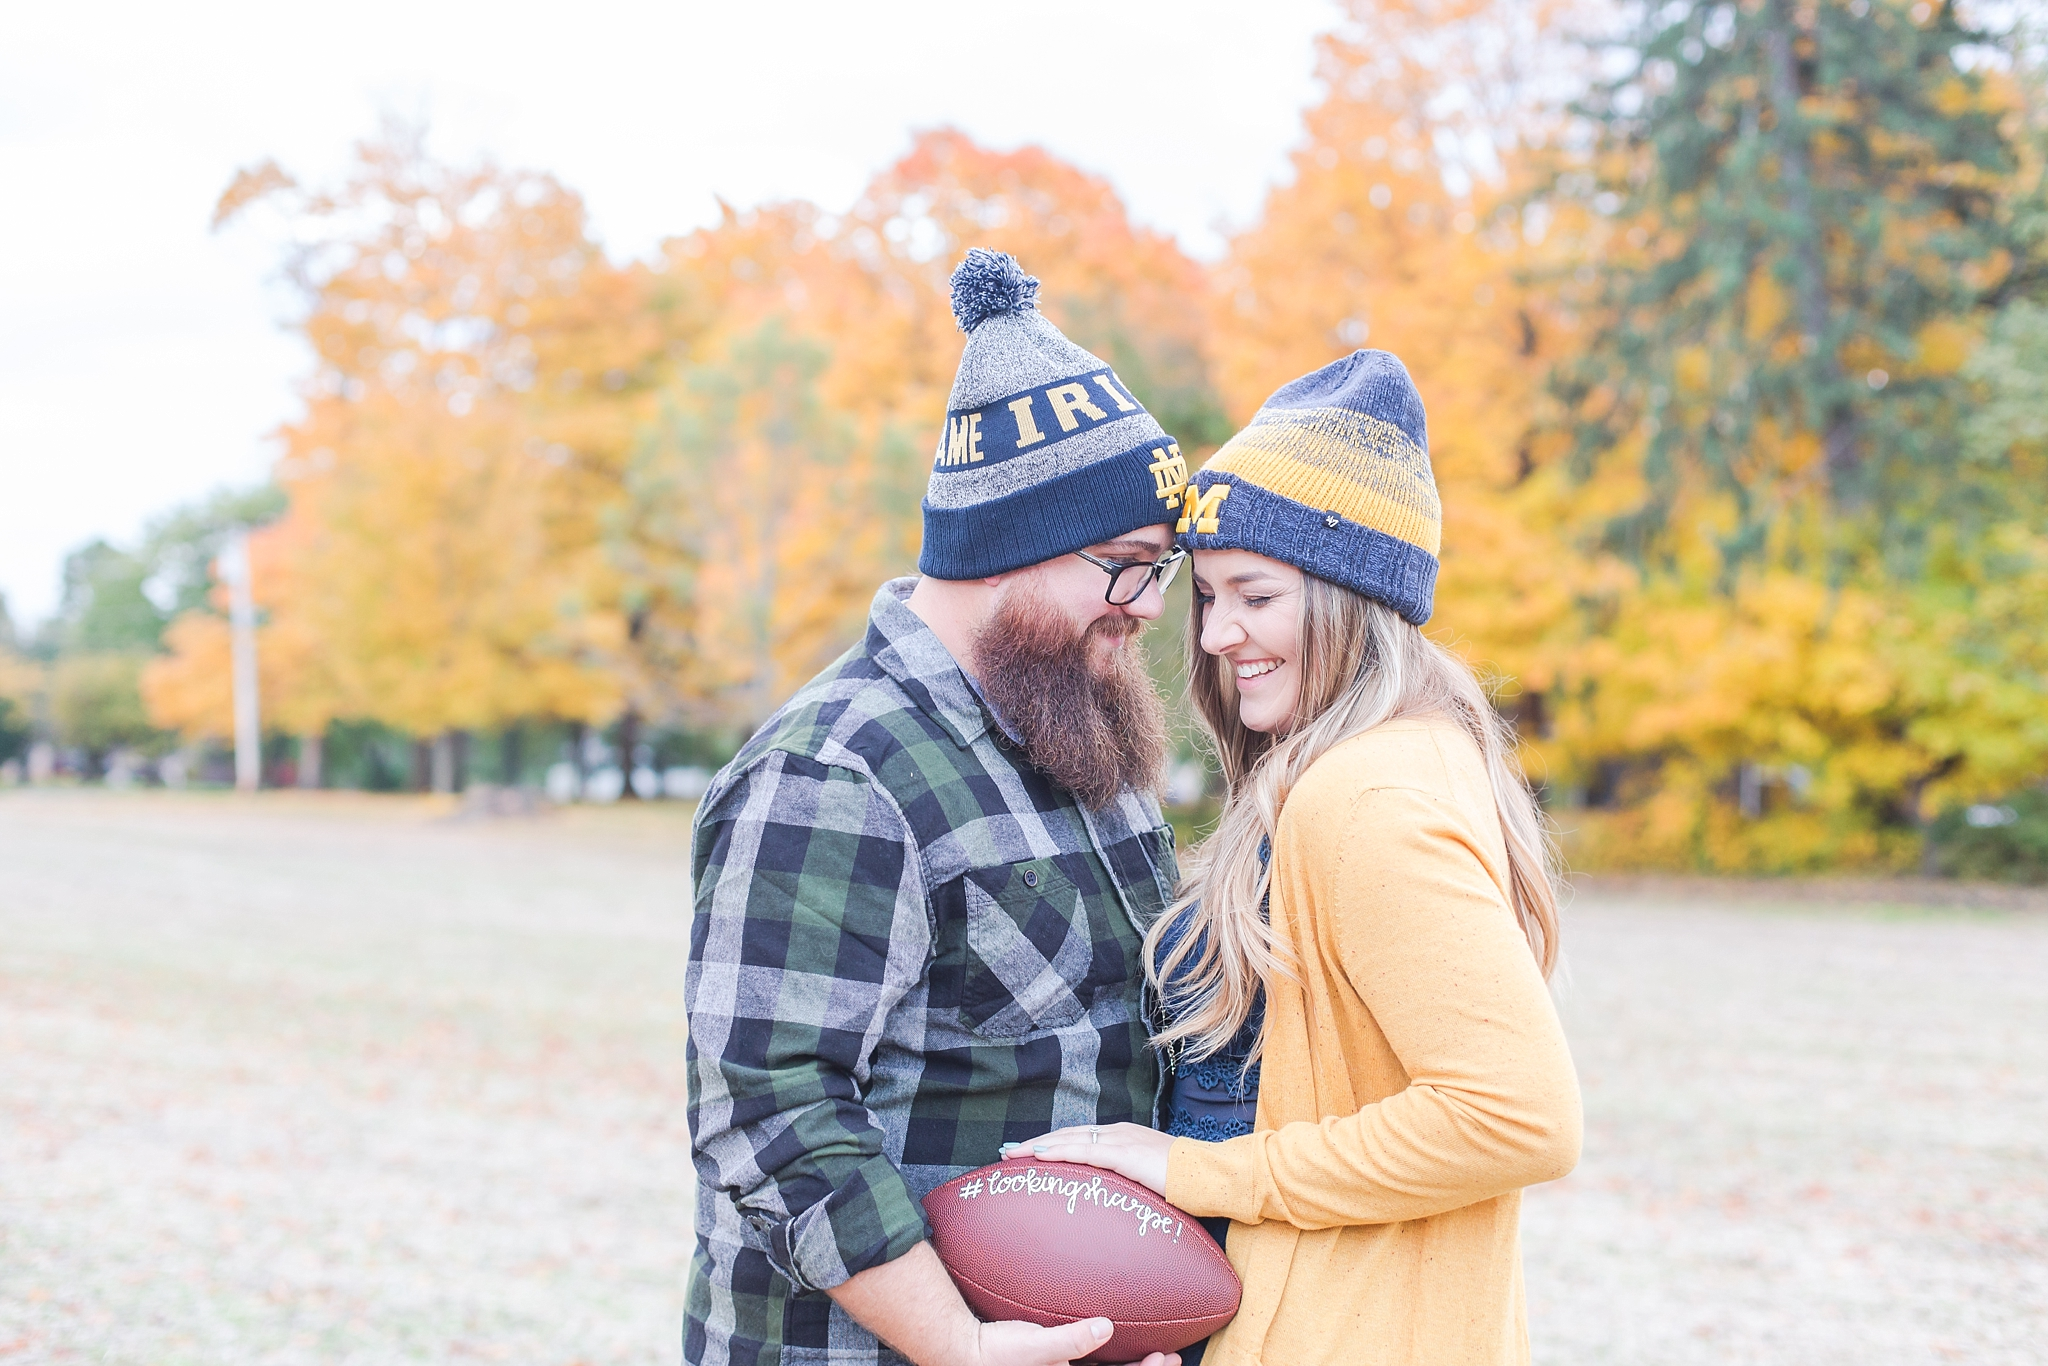 cozy-fall-engagement-photos-at-an-old-family-farm-in-monroe-michigan-by-courtney-carolyn-photography_0021.jpg